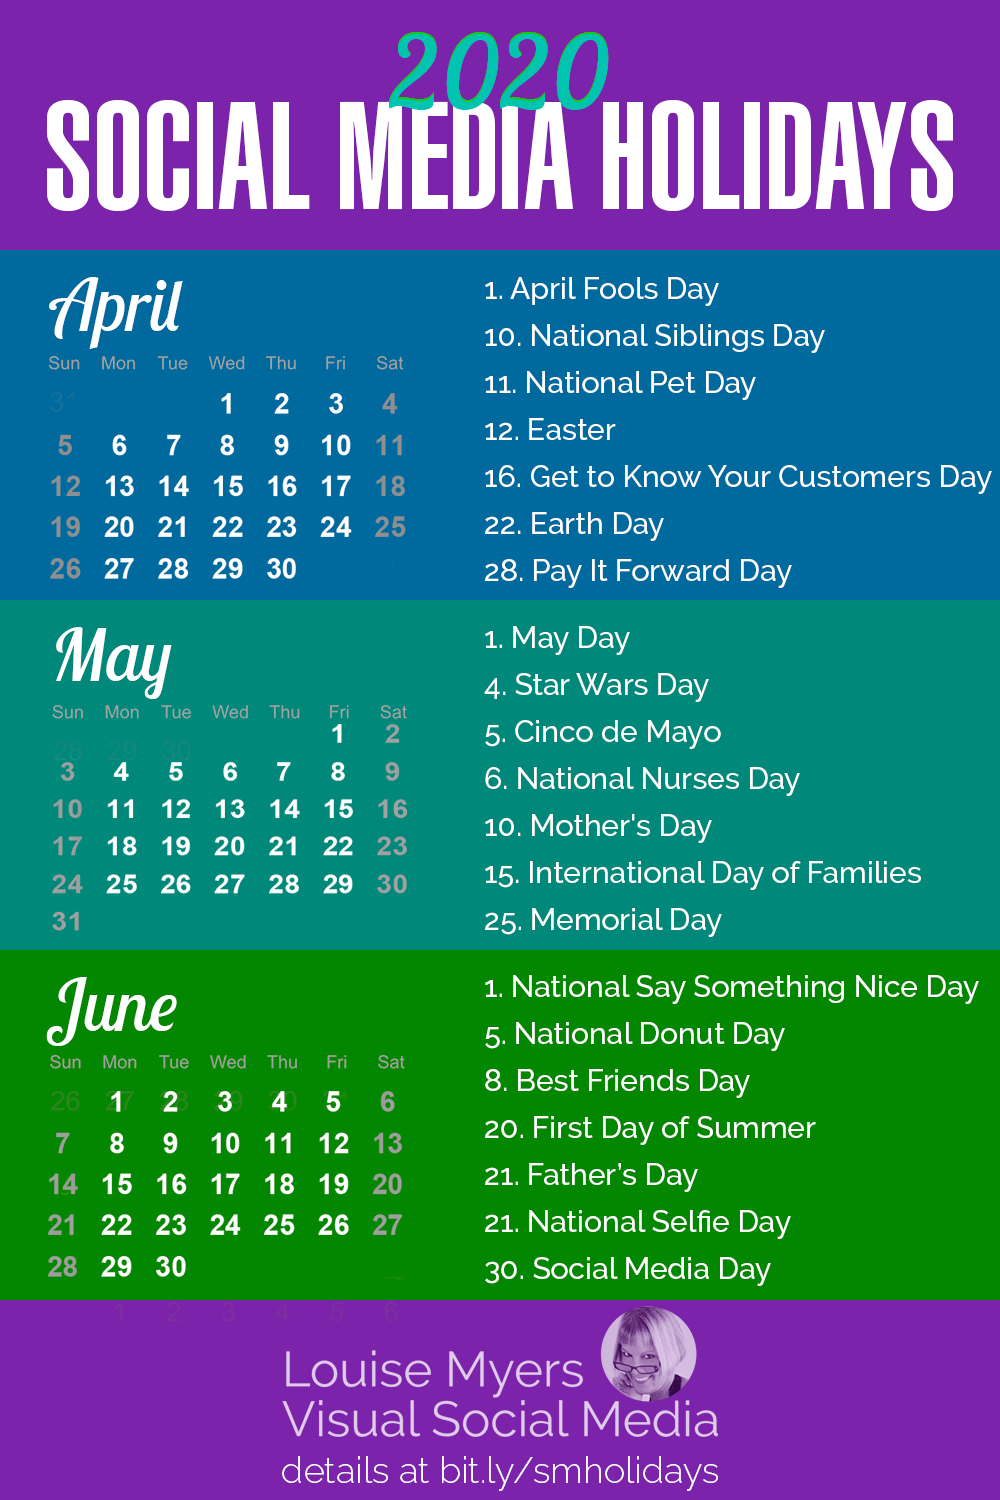 84 Social Media Holidays You Need In 2020: Indispensable! intended for International Days In June